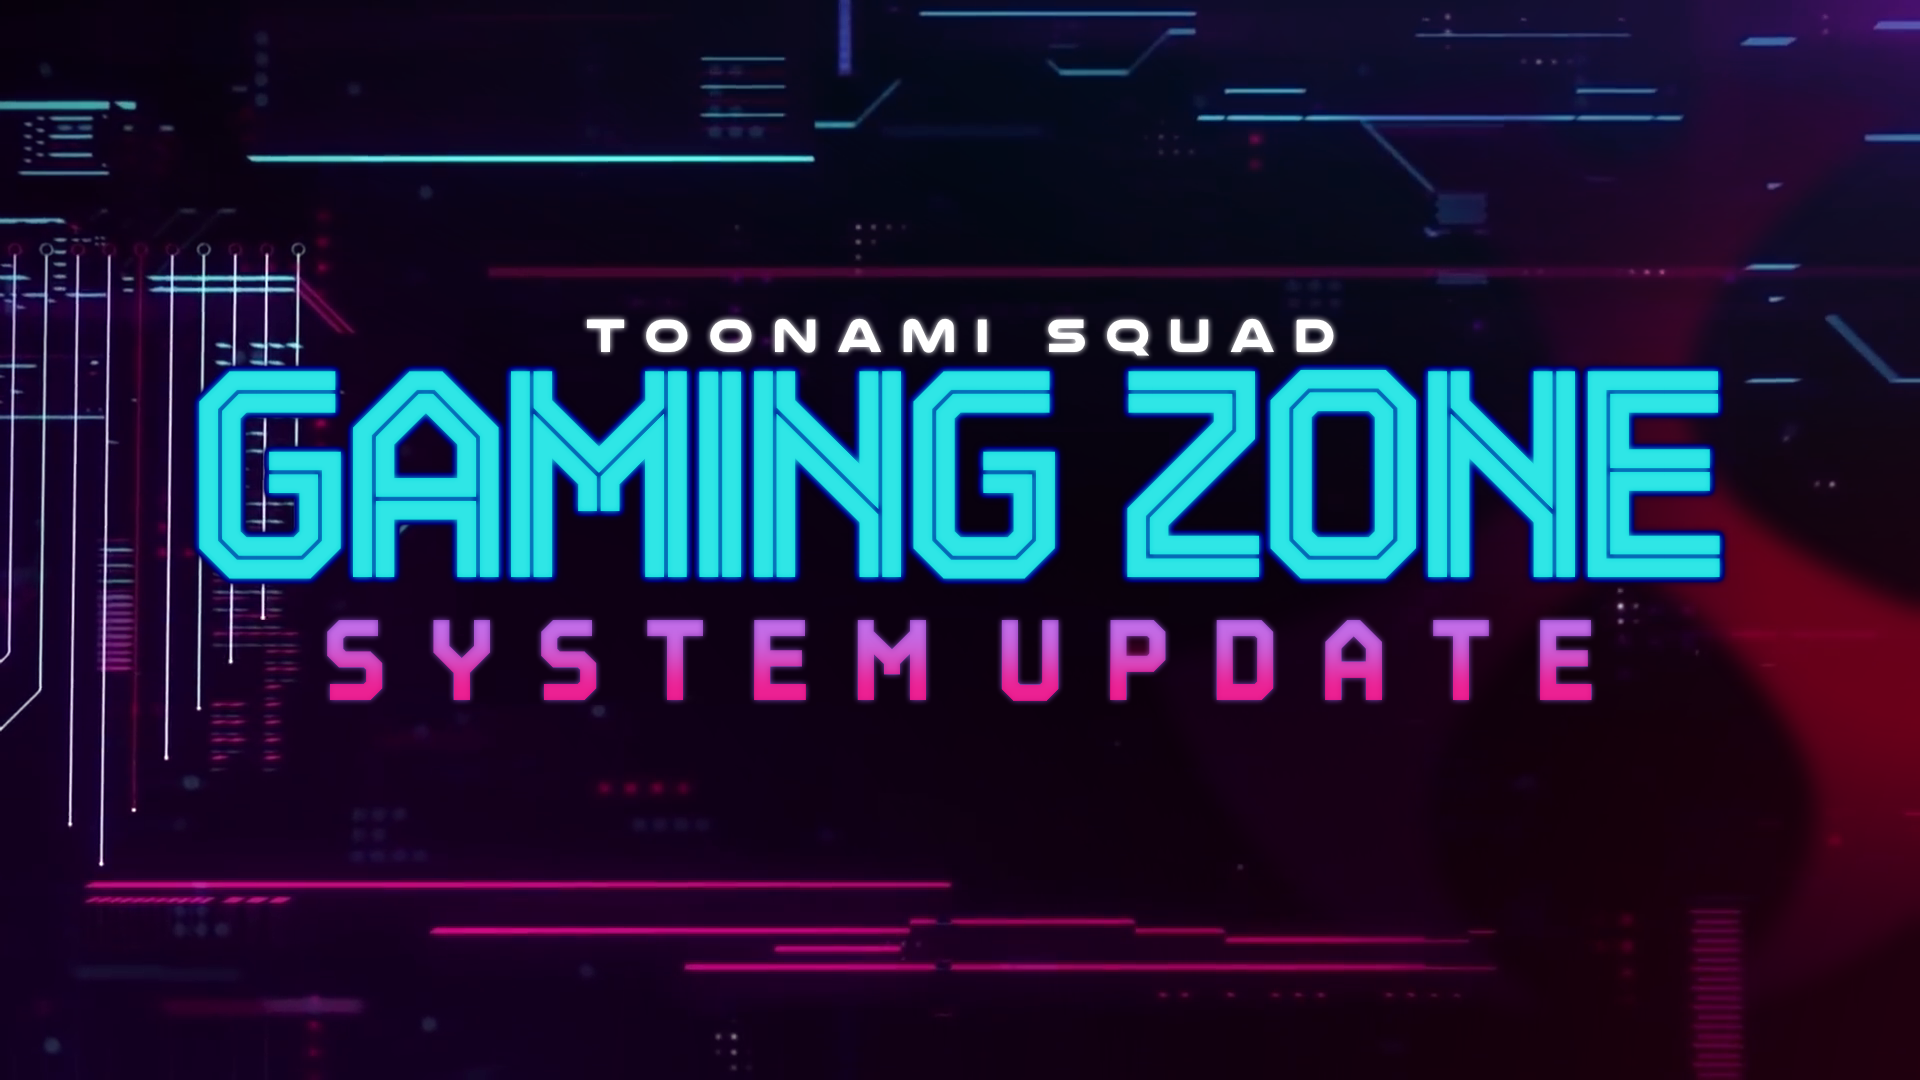 Toonami Squad Gaming Zone System Update 2/8